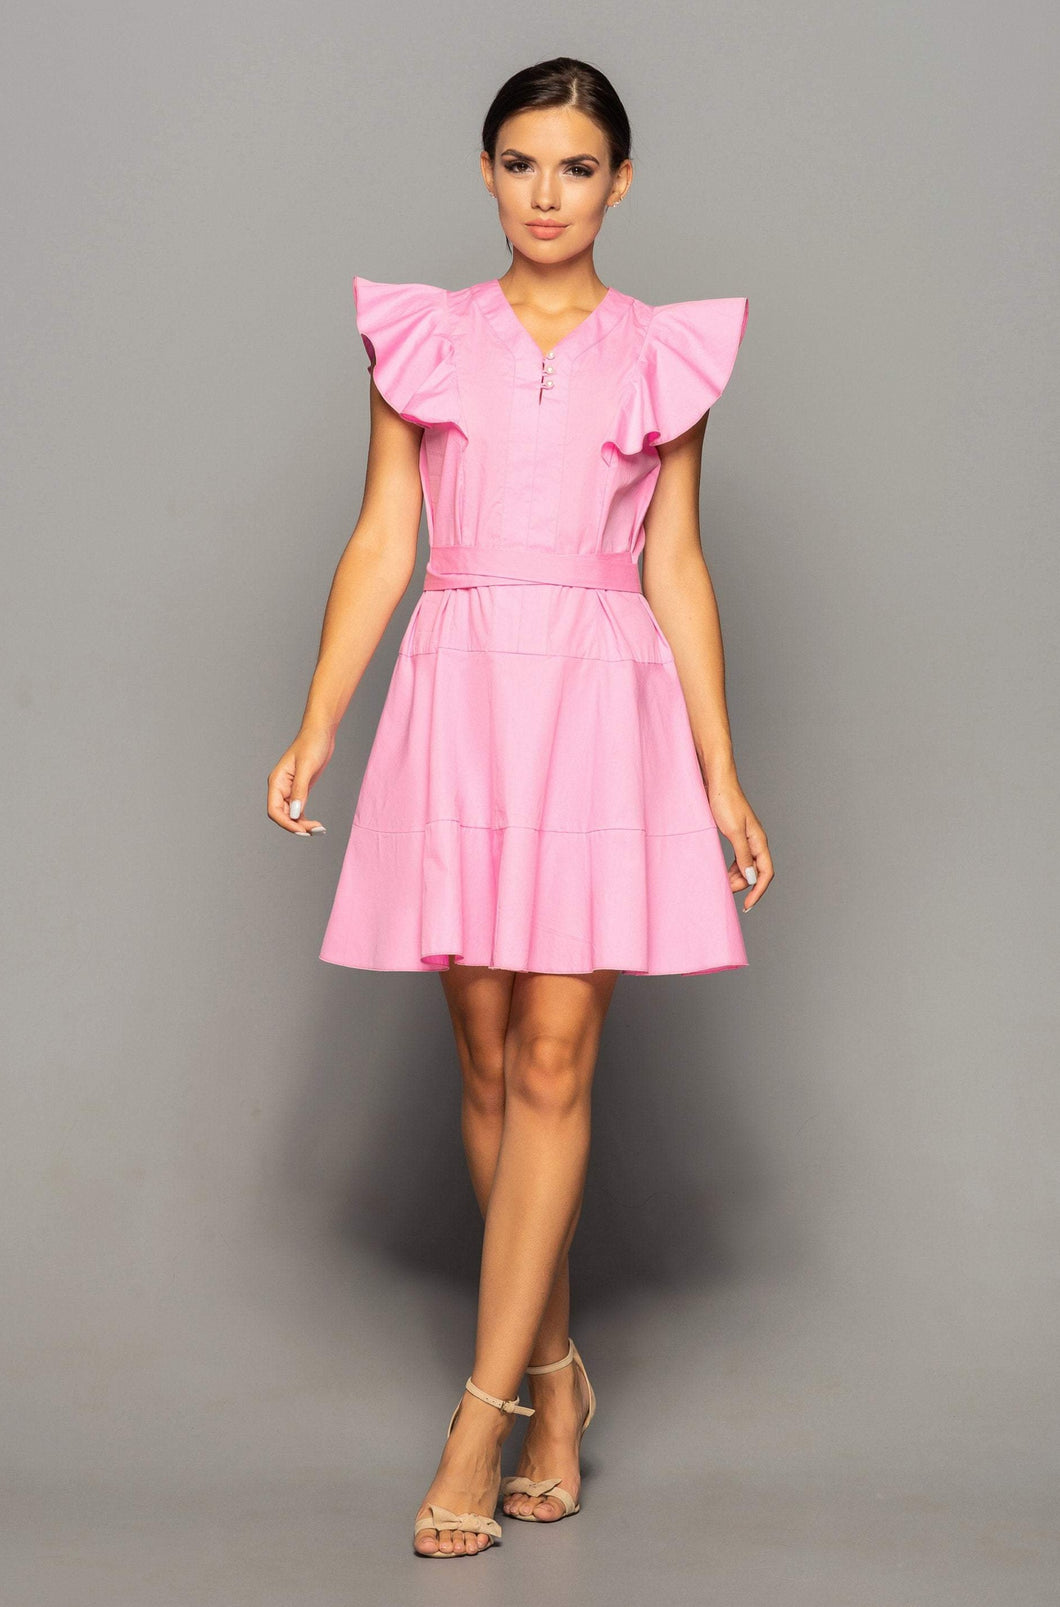 Pink cotton ruffle summer dress